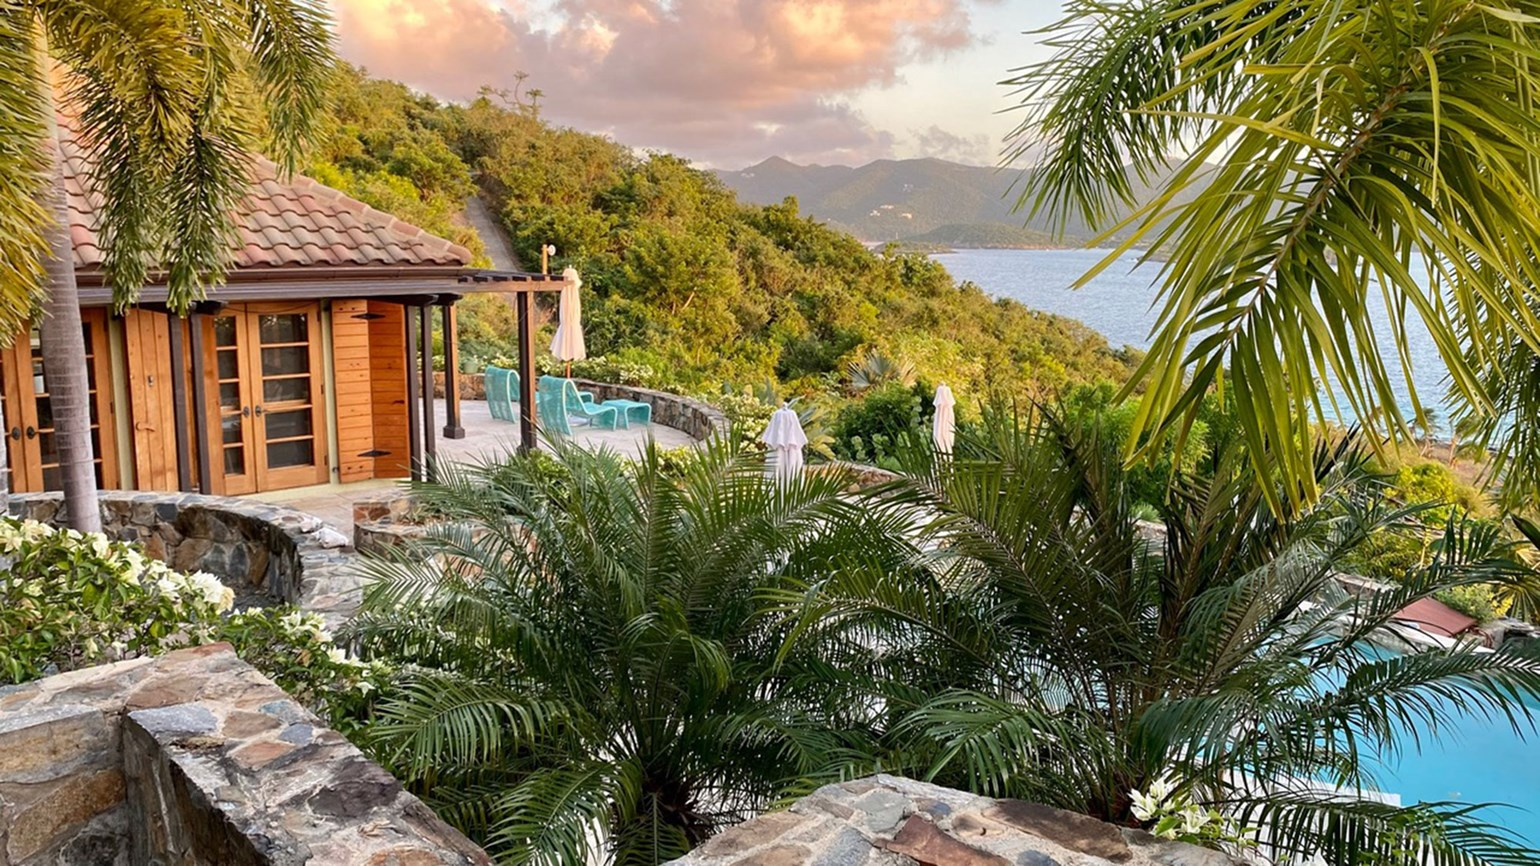 A new U.S. Virgin Islands resort makes sustainability a priority